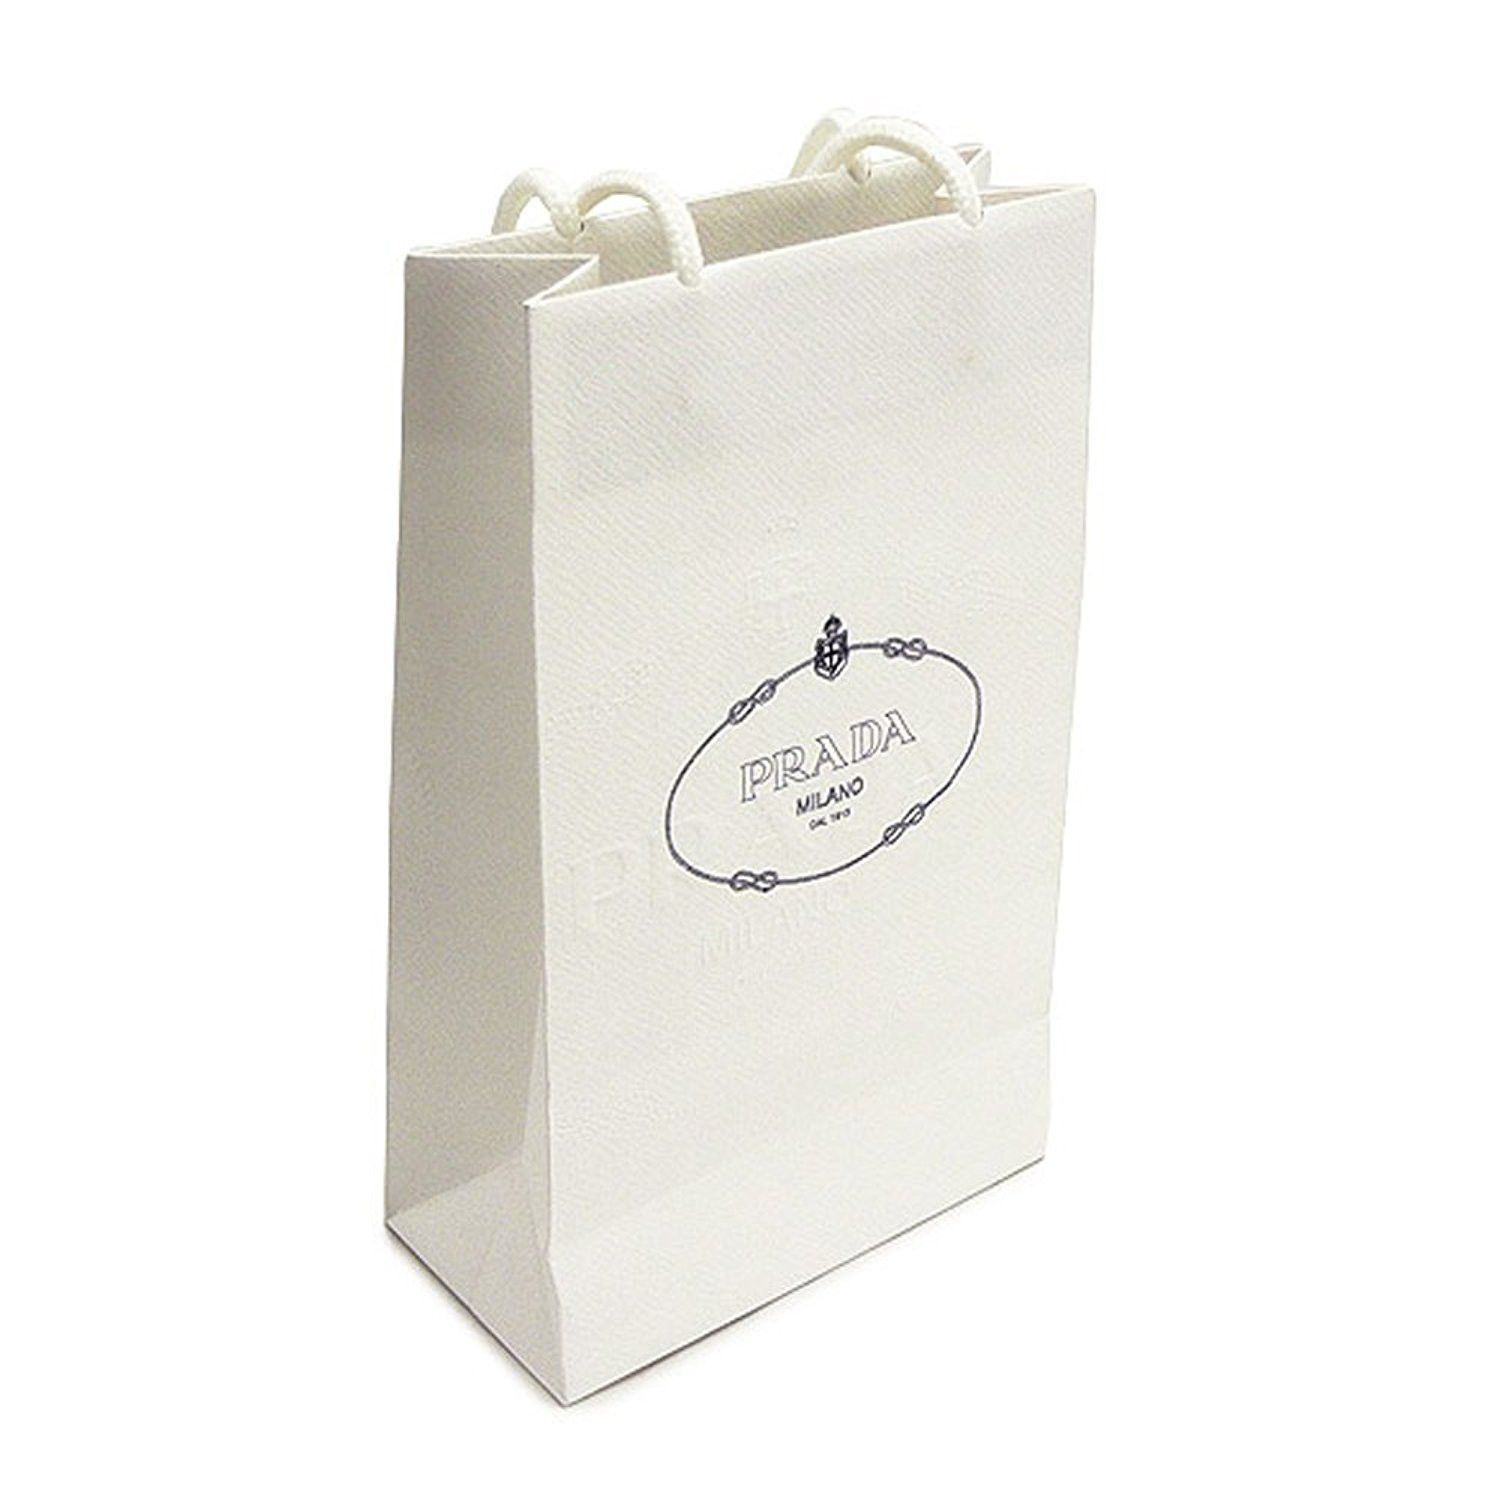 e2829d159ac1 Prada Small Gift Paper Shopping Bag | Products | Small gifts, Paper ...